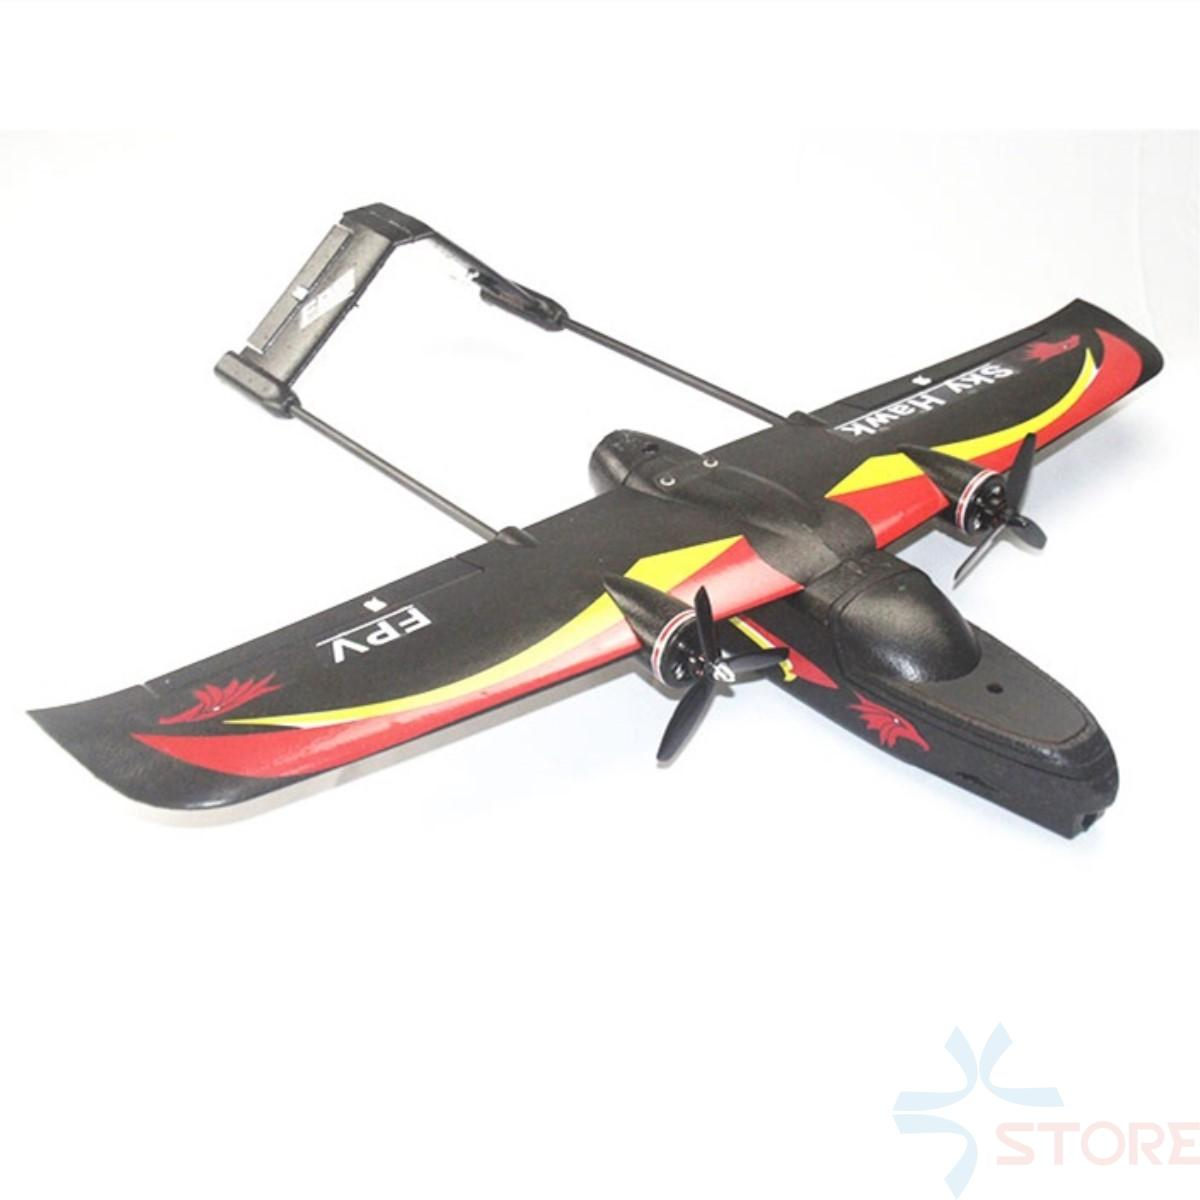 SKY HAWK V2 940mm Wingspan EPP Double Motor Device FPV RC Airplane Kit/PNP  Black Electric RC Glider